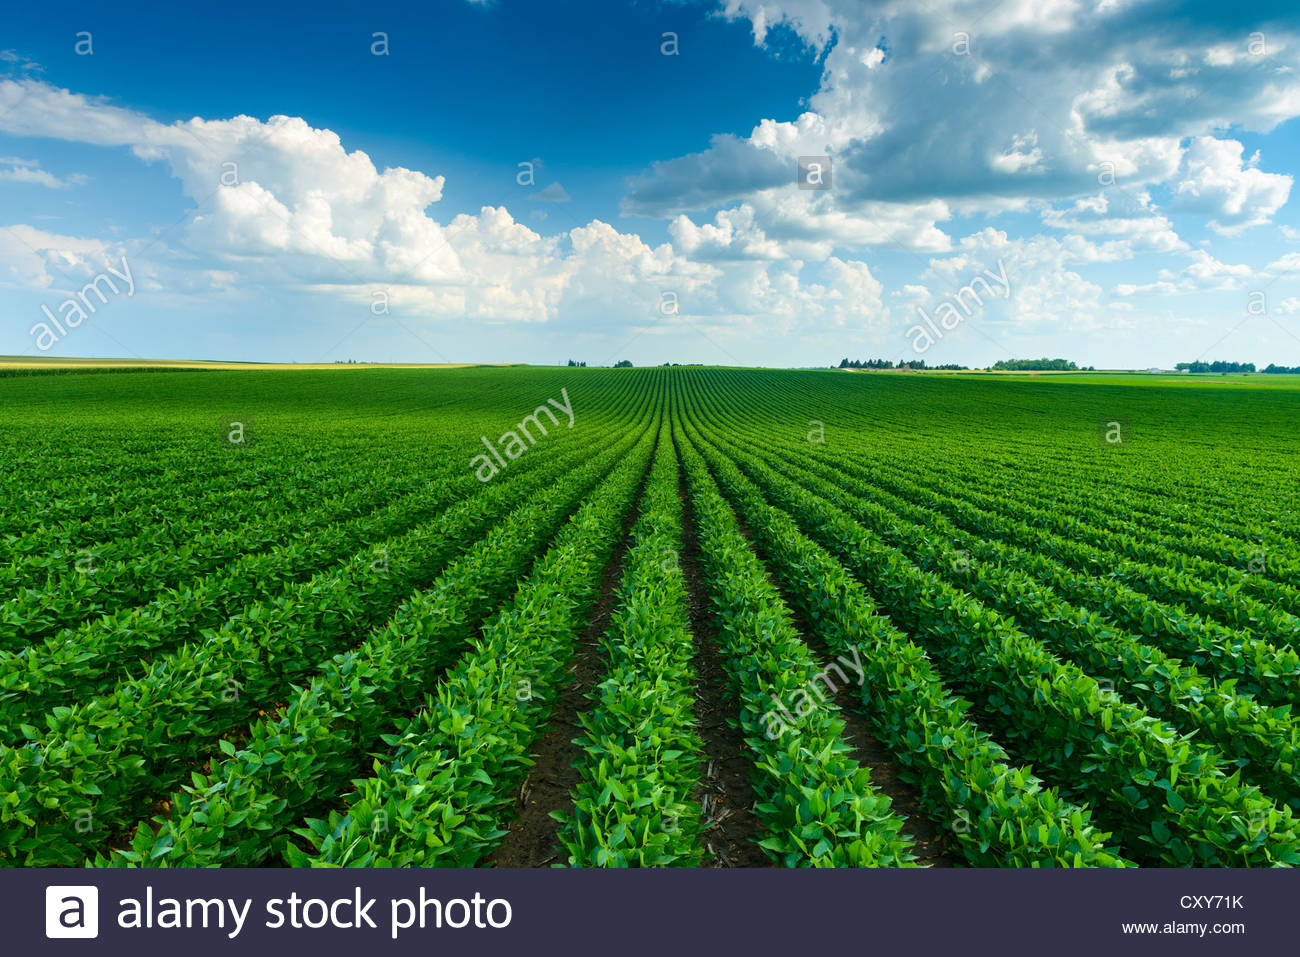 A green soybean field in central Iowa at its mid-season growth stage. - Stock Image